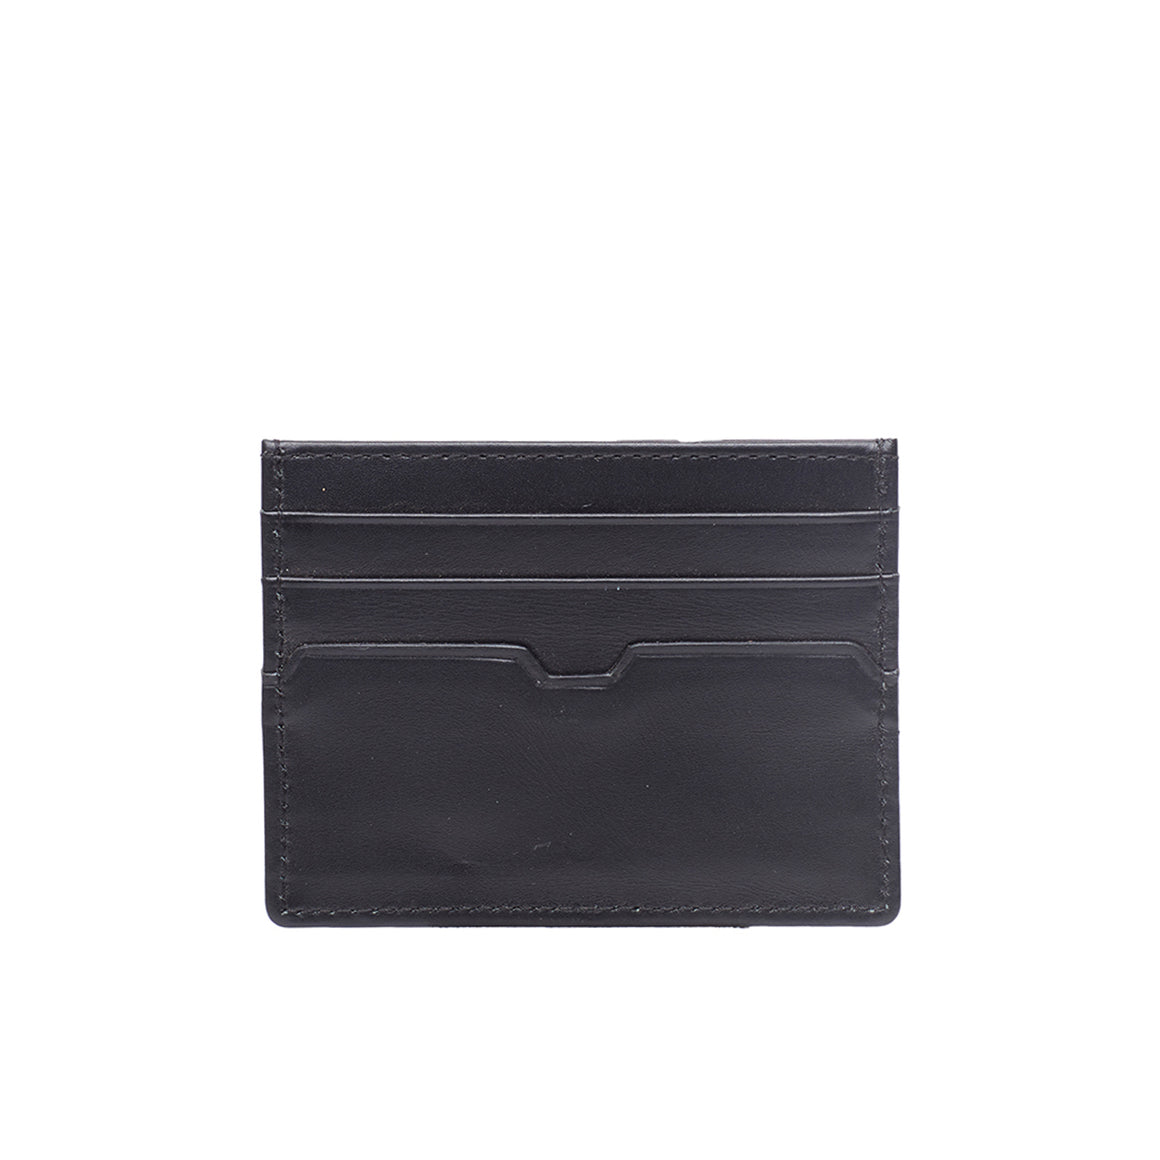 WT 0035 - TOHL ZELO MEN'S CARD HOLDER - CHARCOAL BLACK